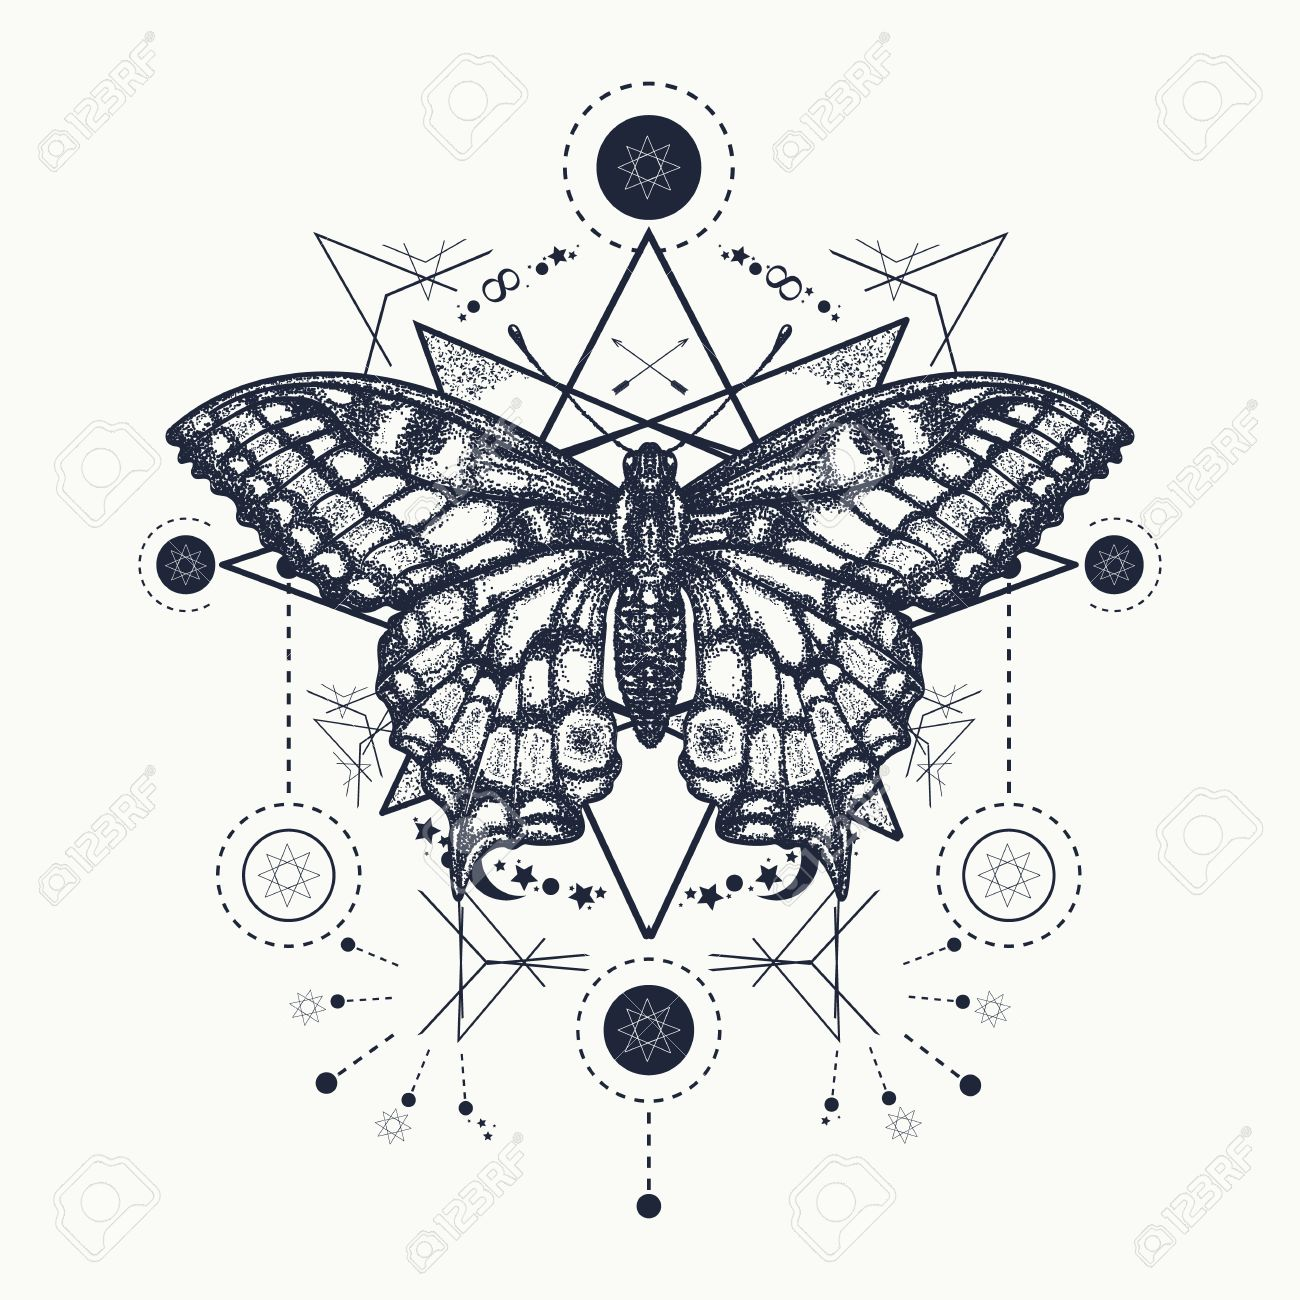 ccdbcf83b017e Butterfly tattoo geometrical style. Beautiful Swallowtail boho t-shirt  design. Mystical esoteric symbol